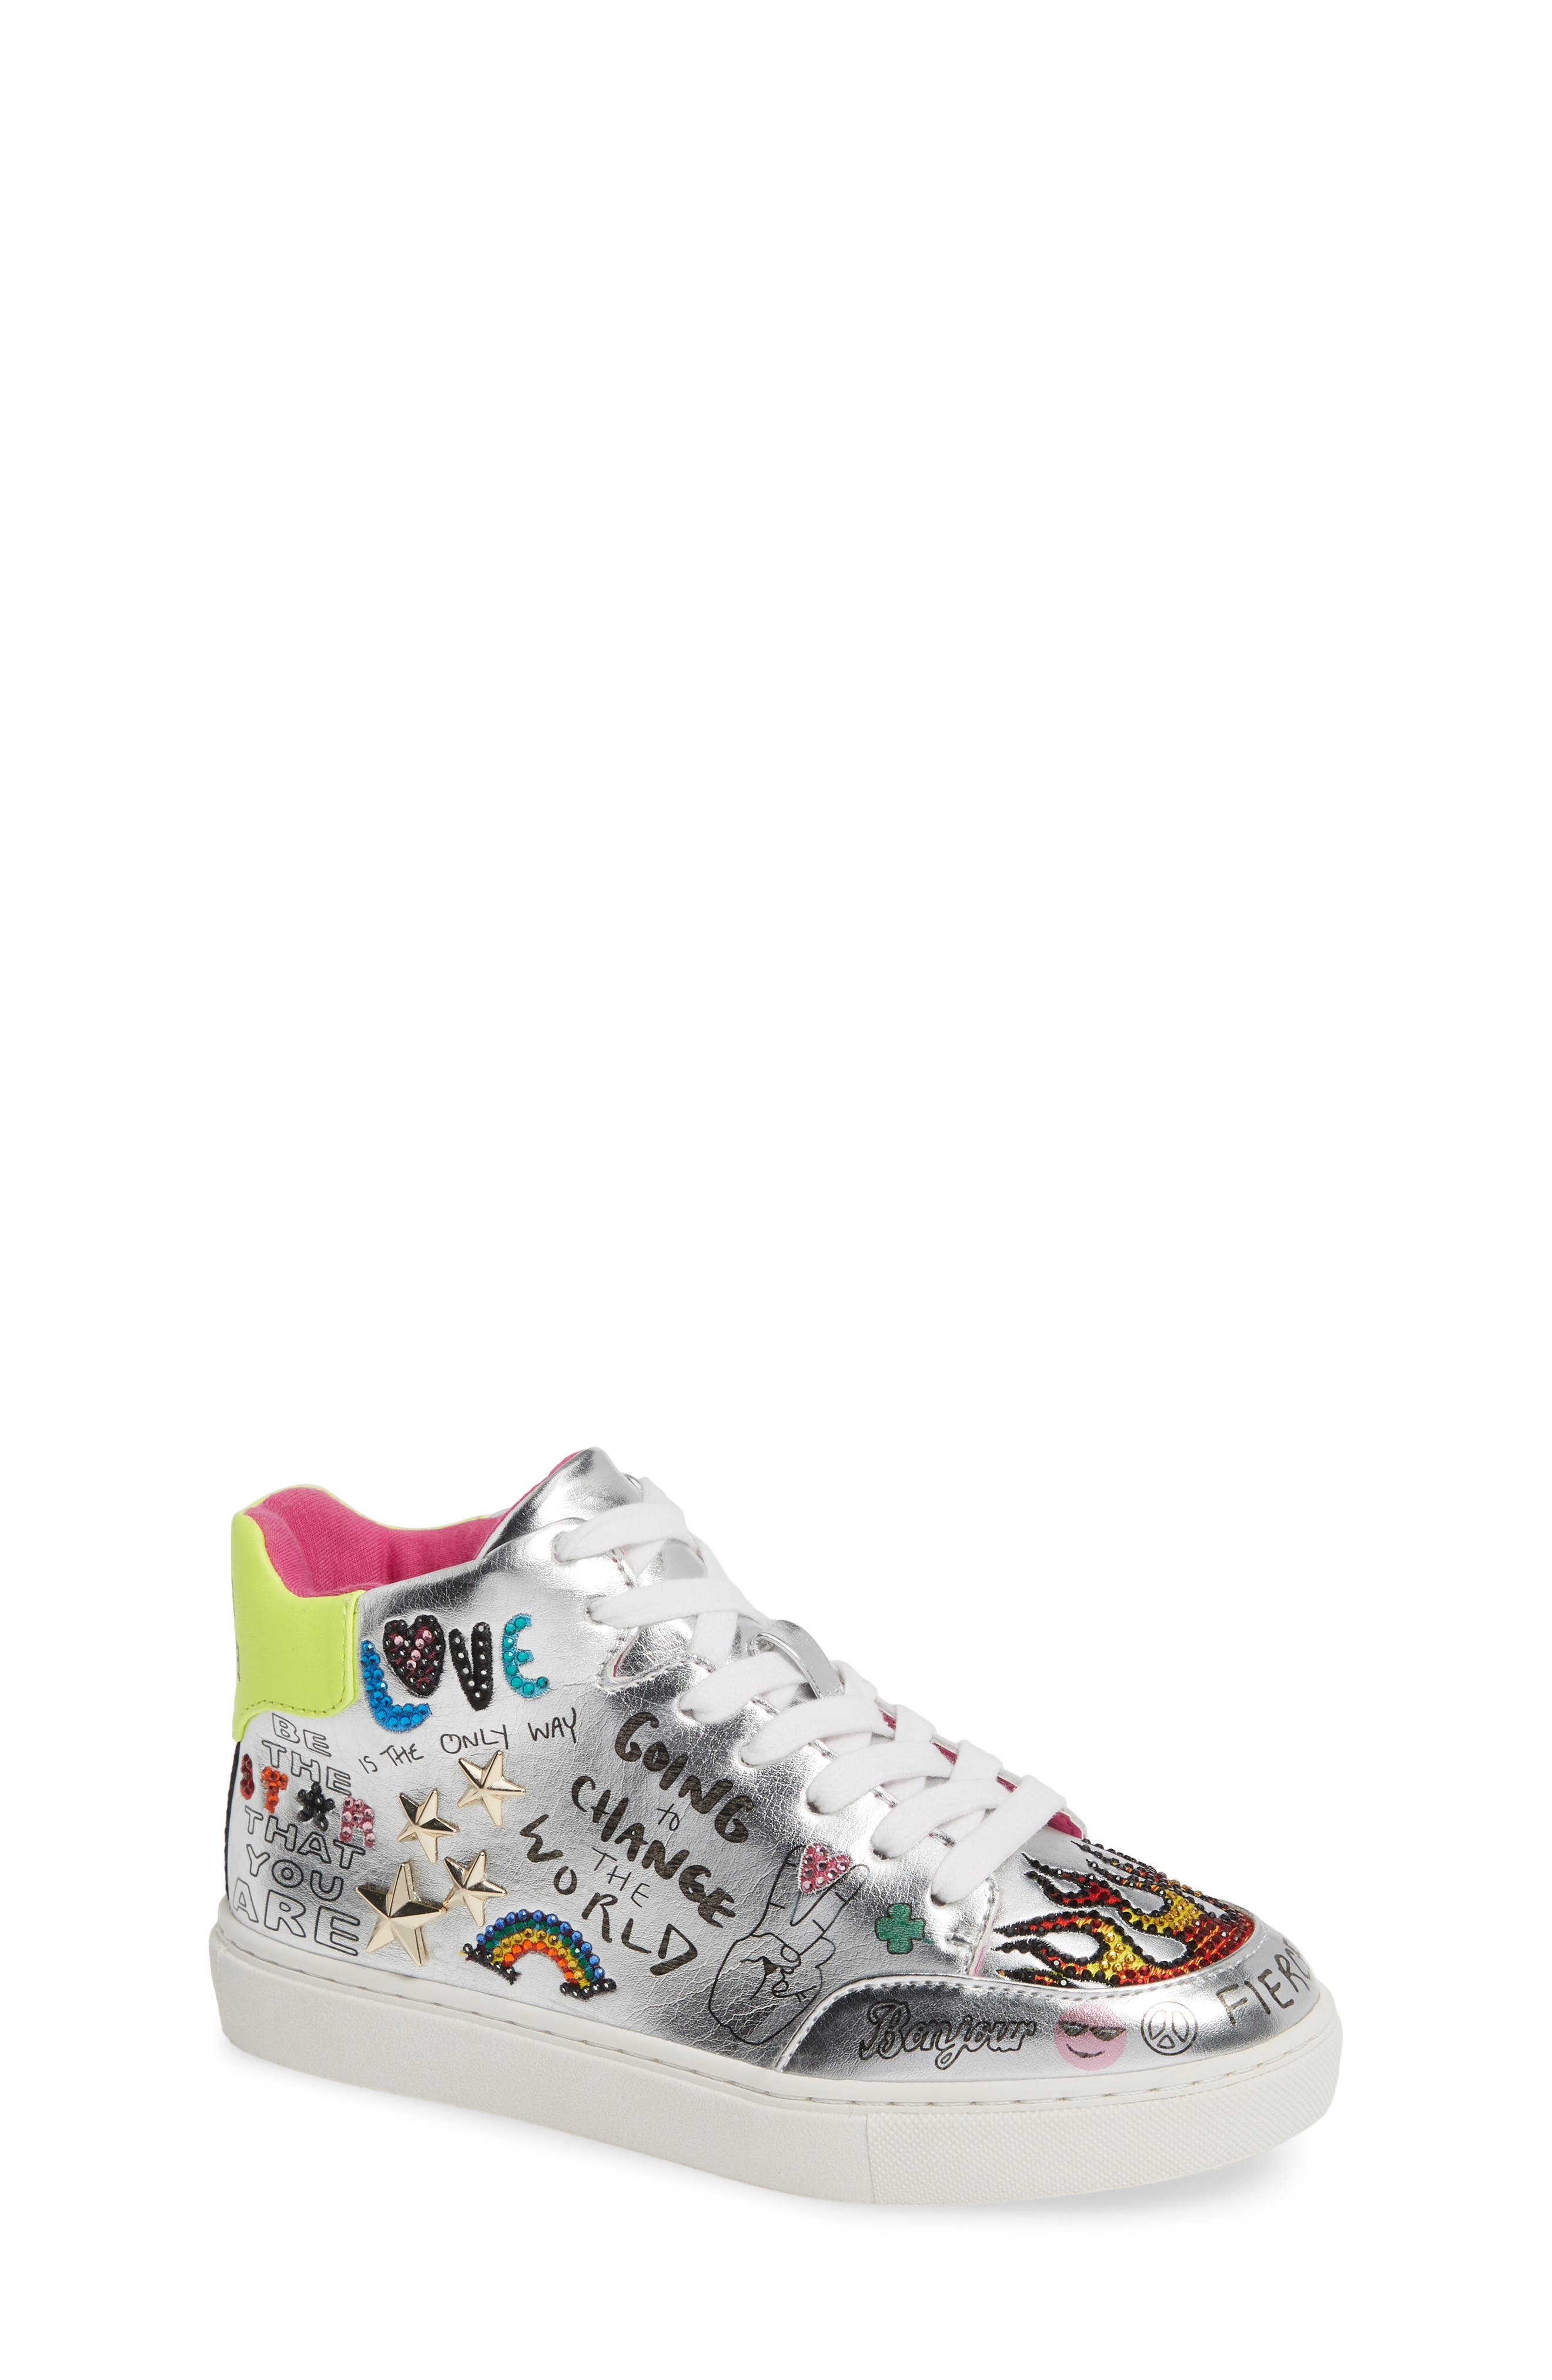 STEVE MADDEN, JPOWER High Top Sneaker, Main thumbnail 1, color, SILVER MULTI